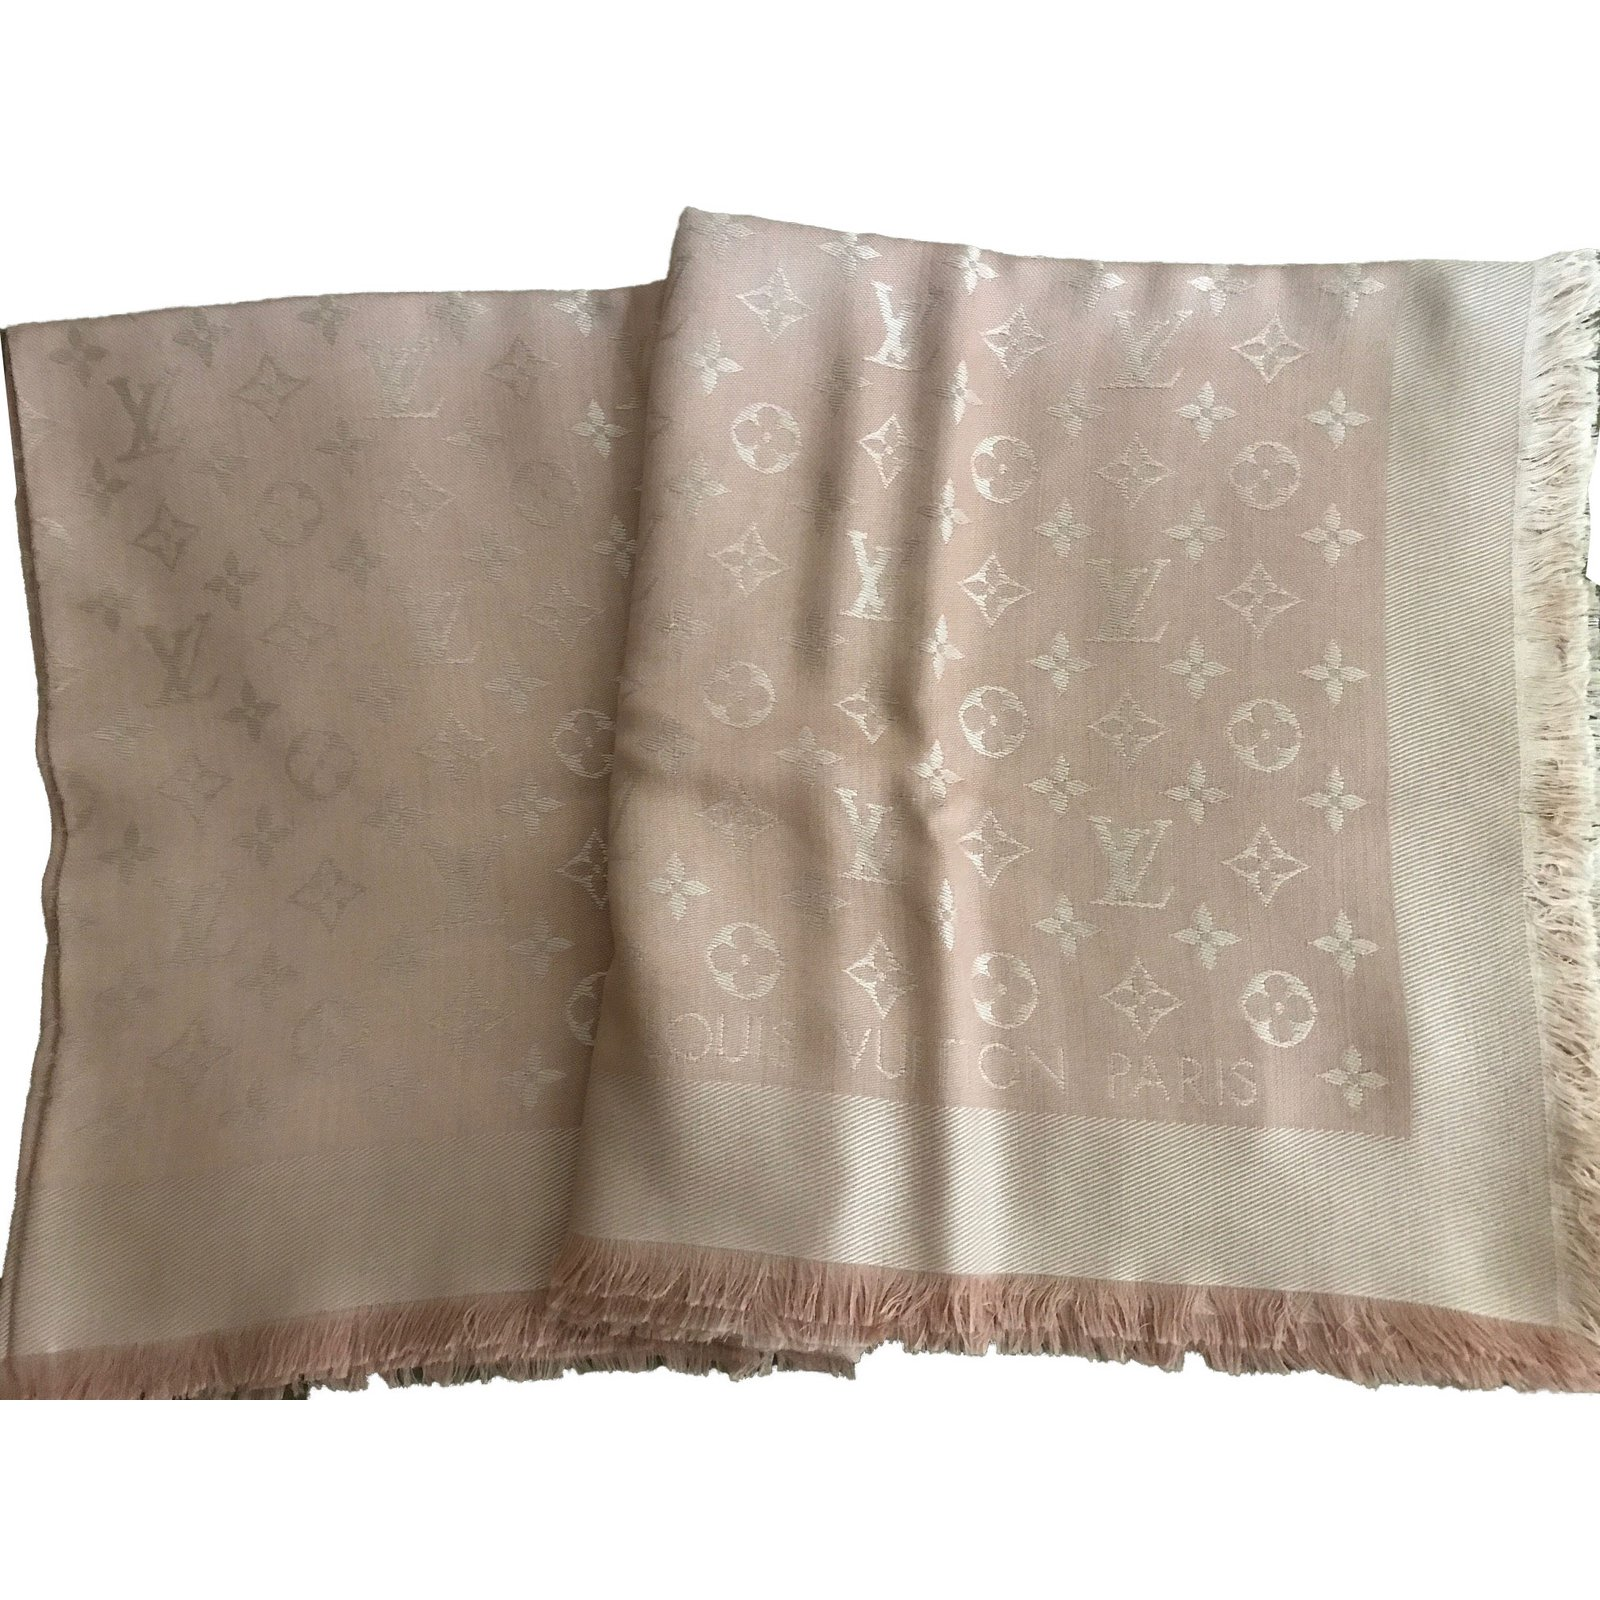 de9e01873062 Foulards Louis Vuitton Châle Soie Rose ref.47331 - Joli Closet